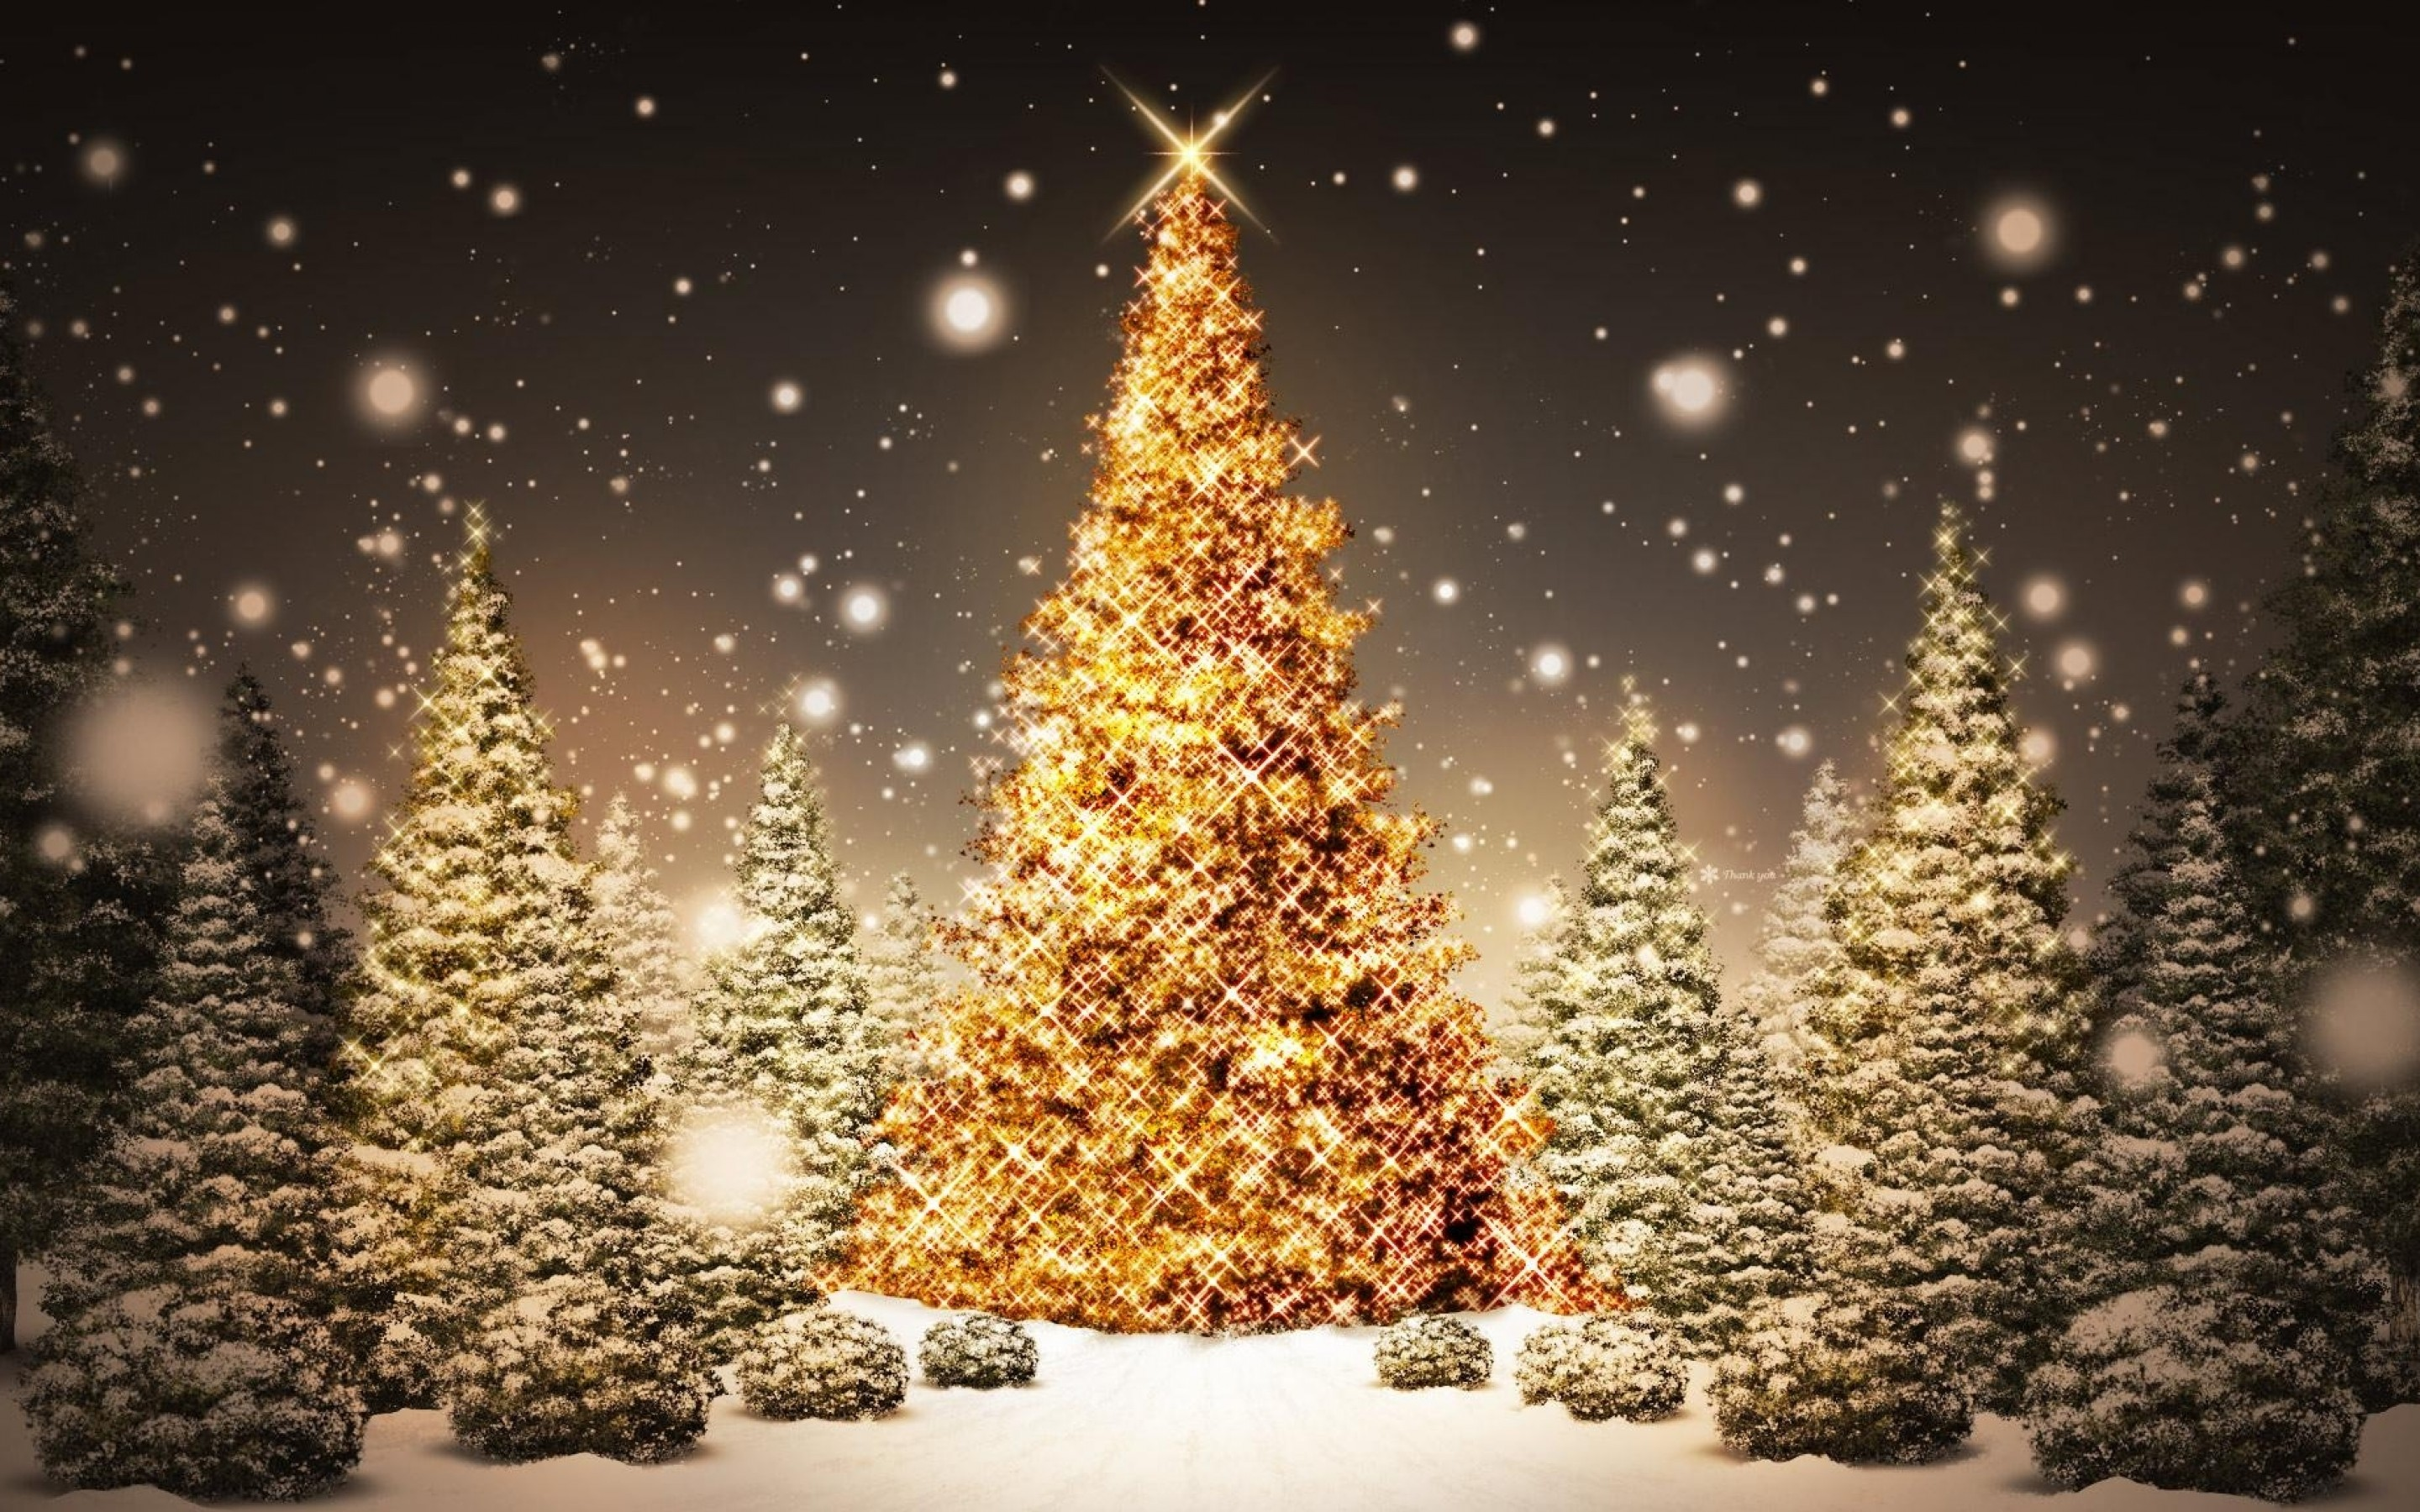 Christmas Images Wallpaper